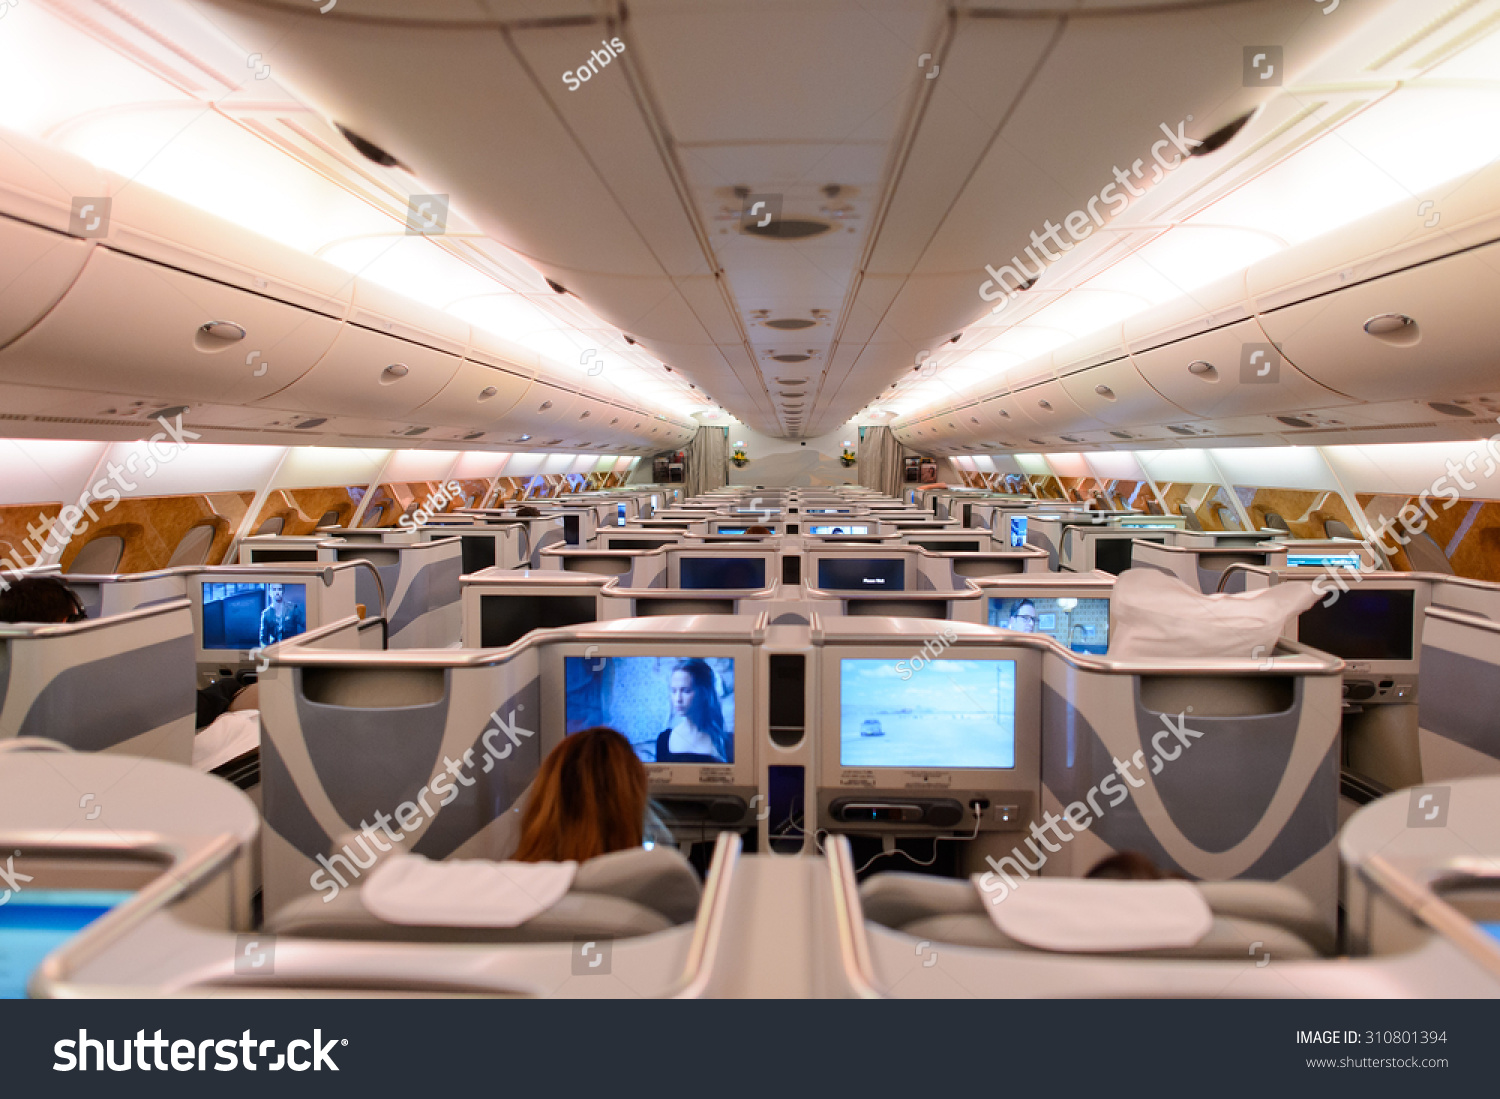 Hong kong june 18 2015 emirates stock photo 310801394 for Airbus a380 emirates interior